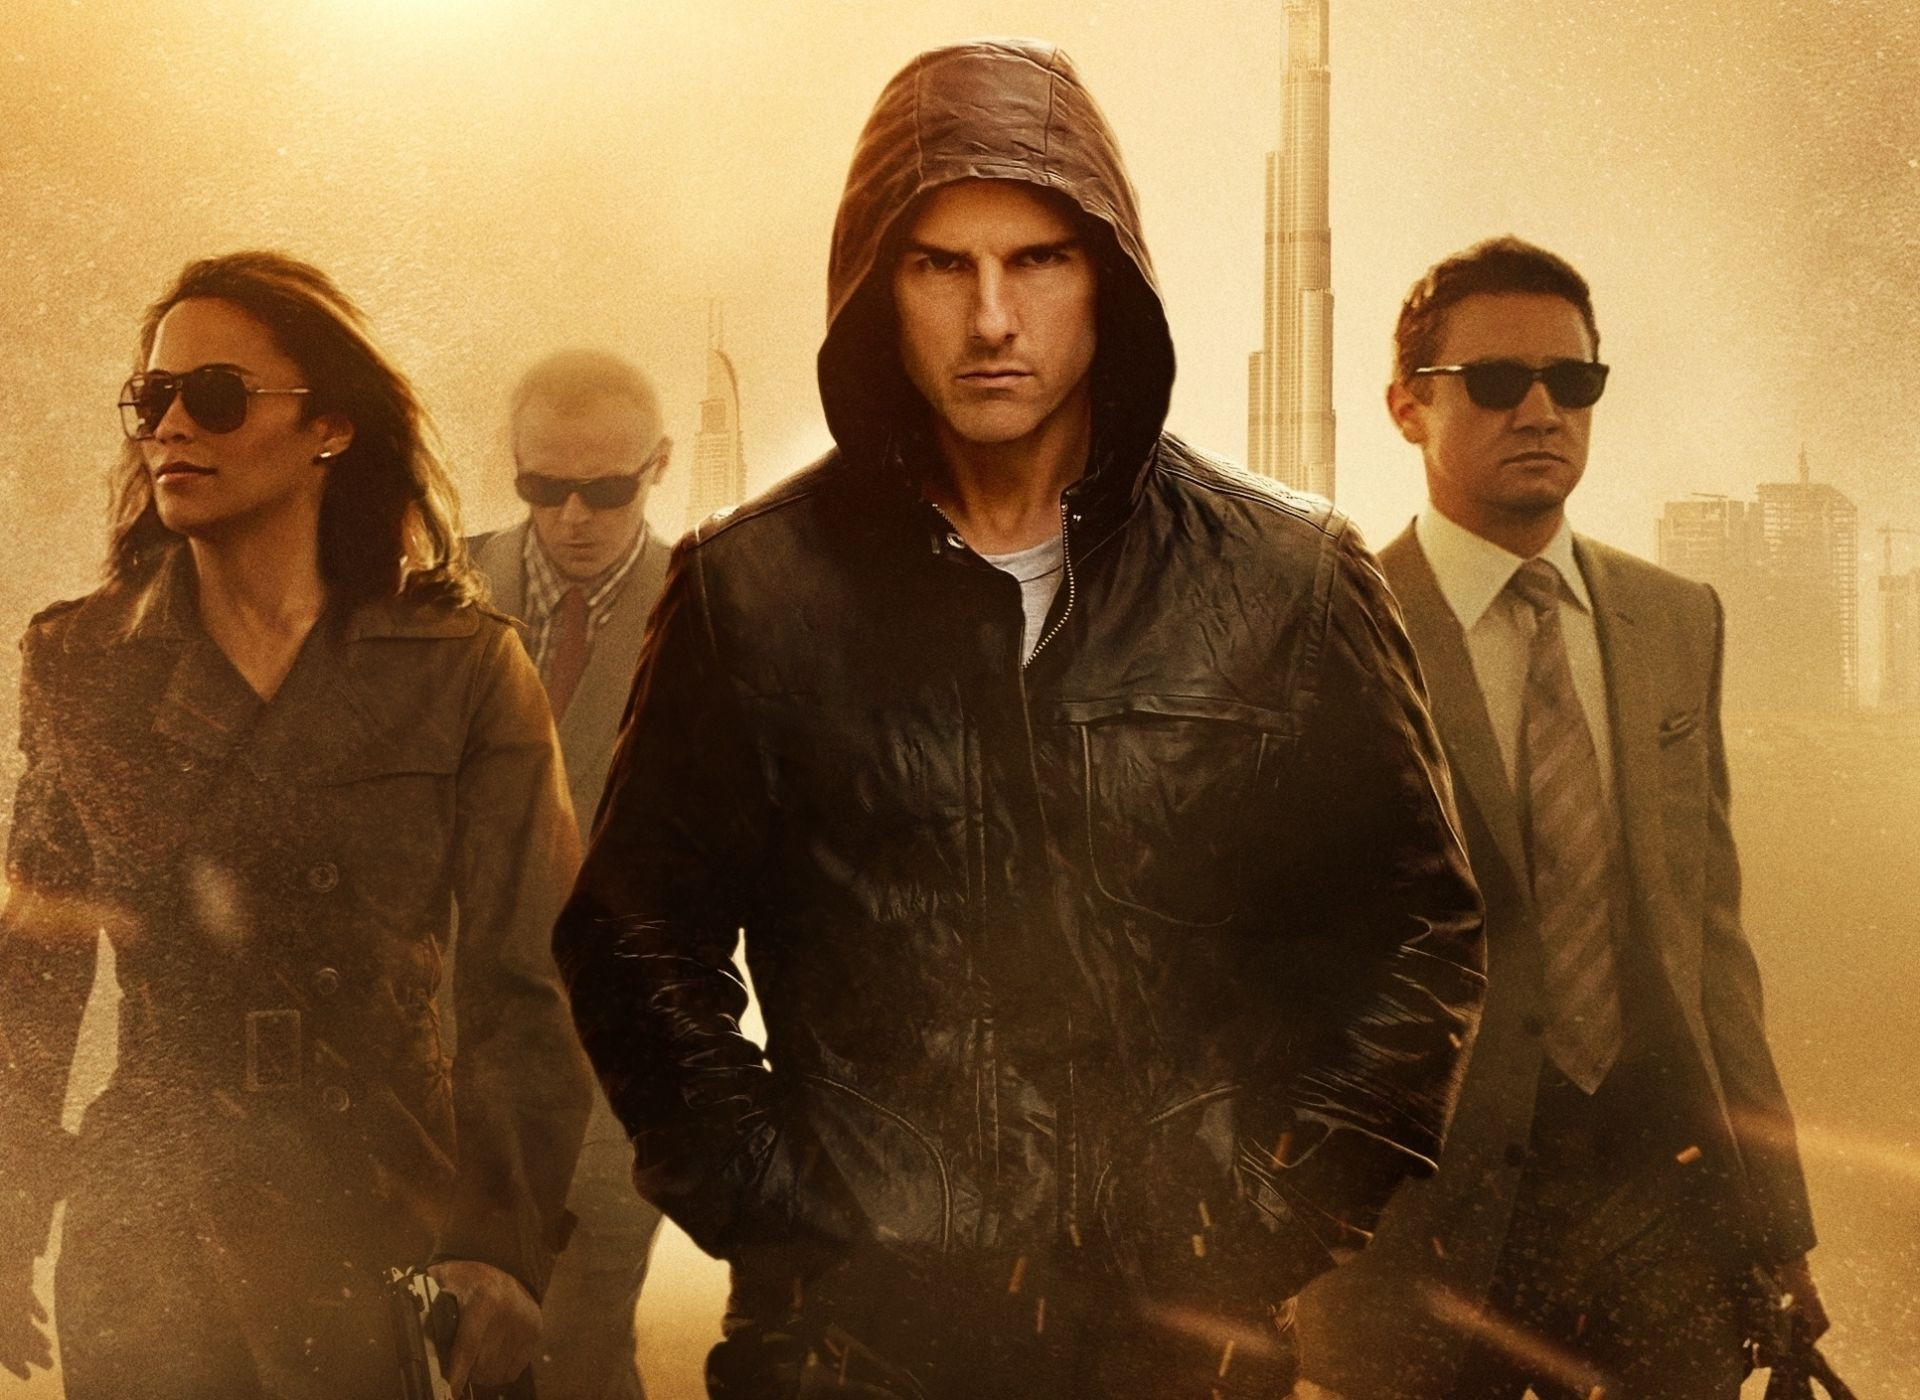 Mission impossible ghost protocol - Free wallpapers